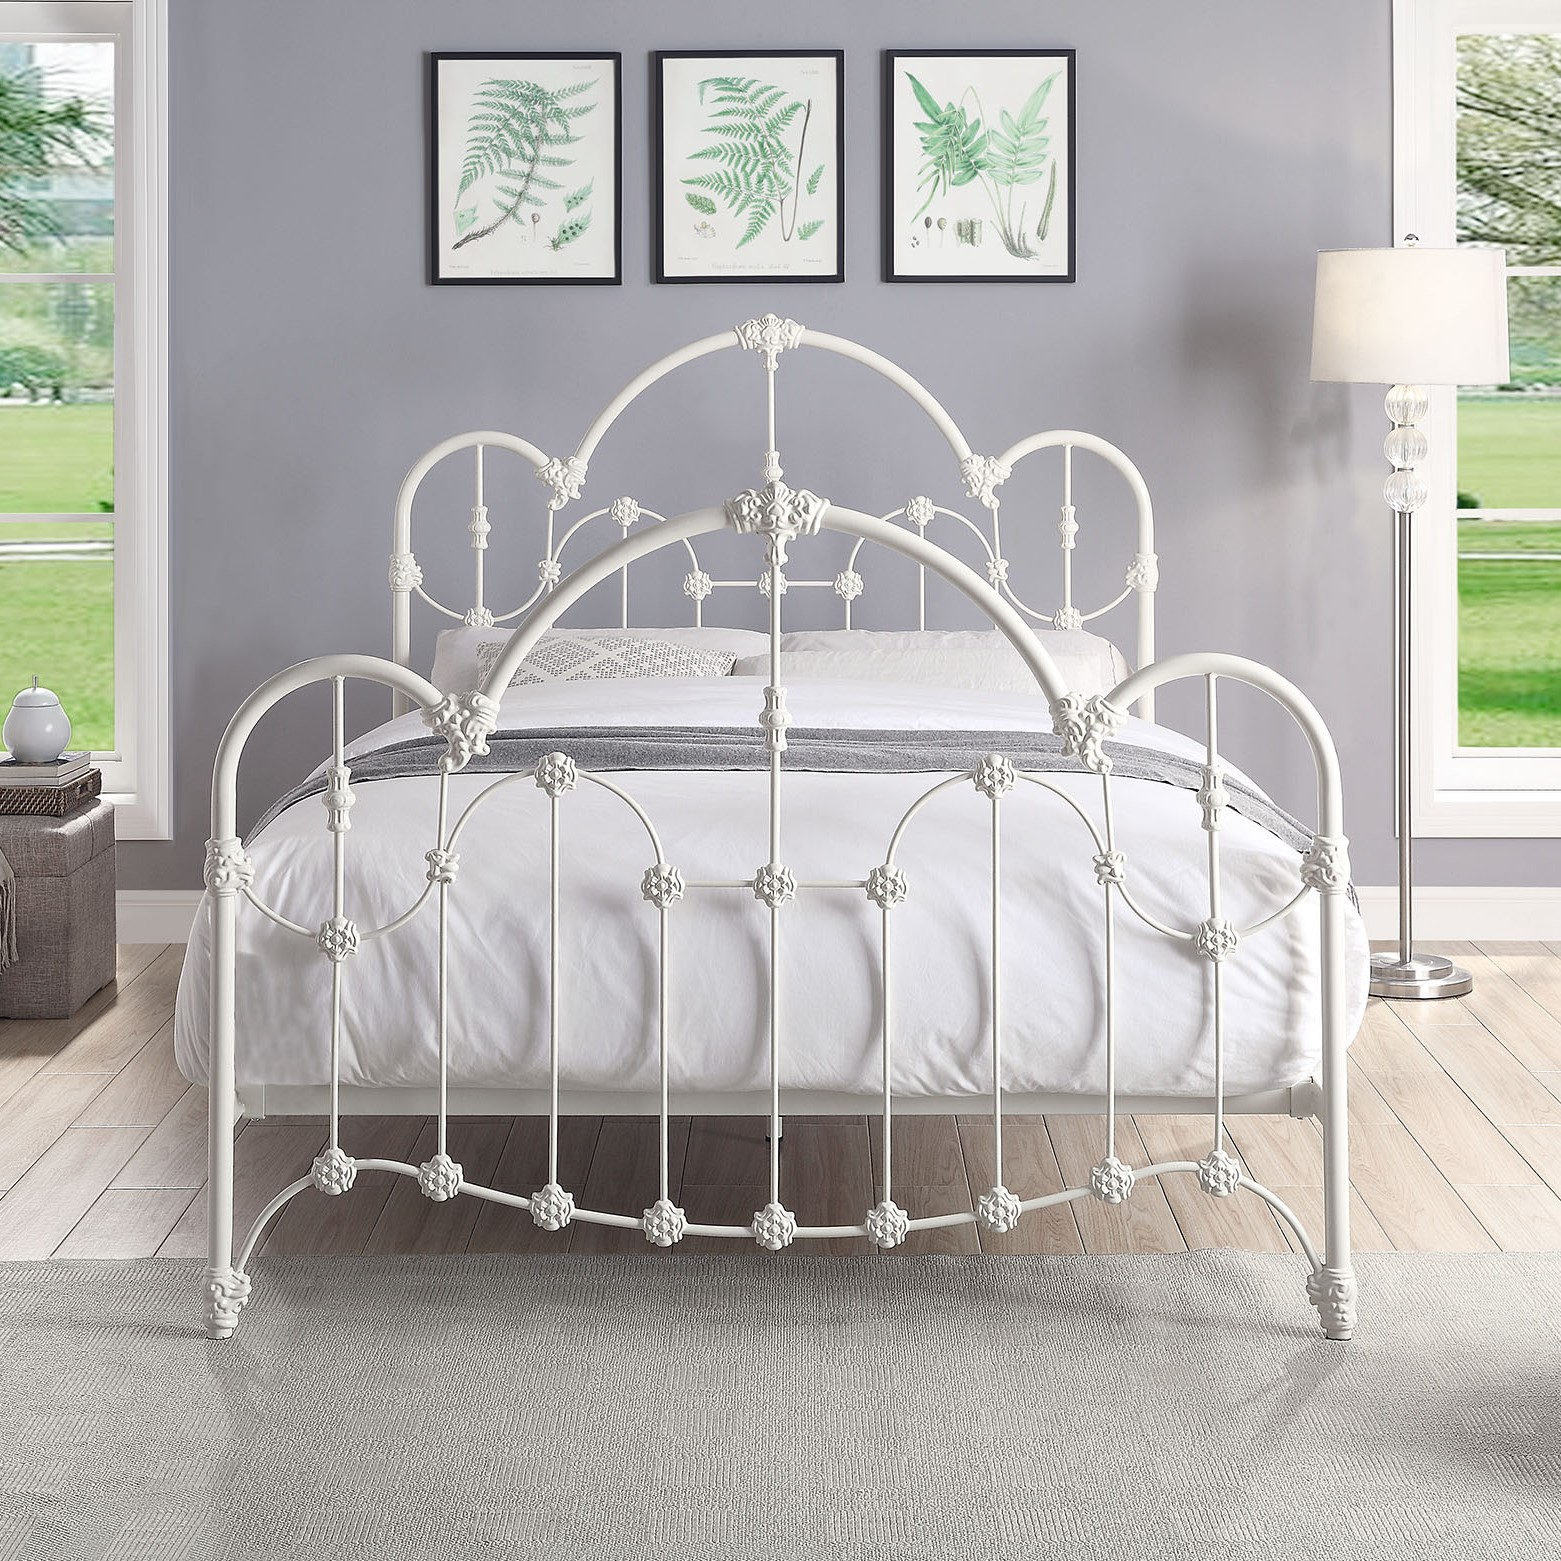 Picture of: Normandy Queen Wrought Iron Bed Out Of The Cot